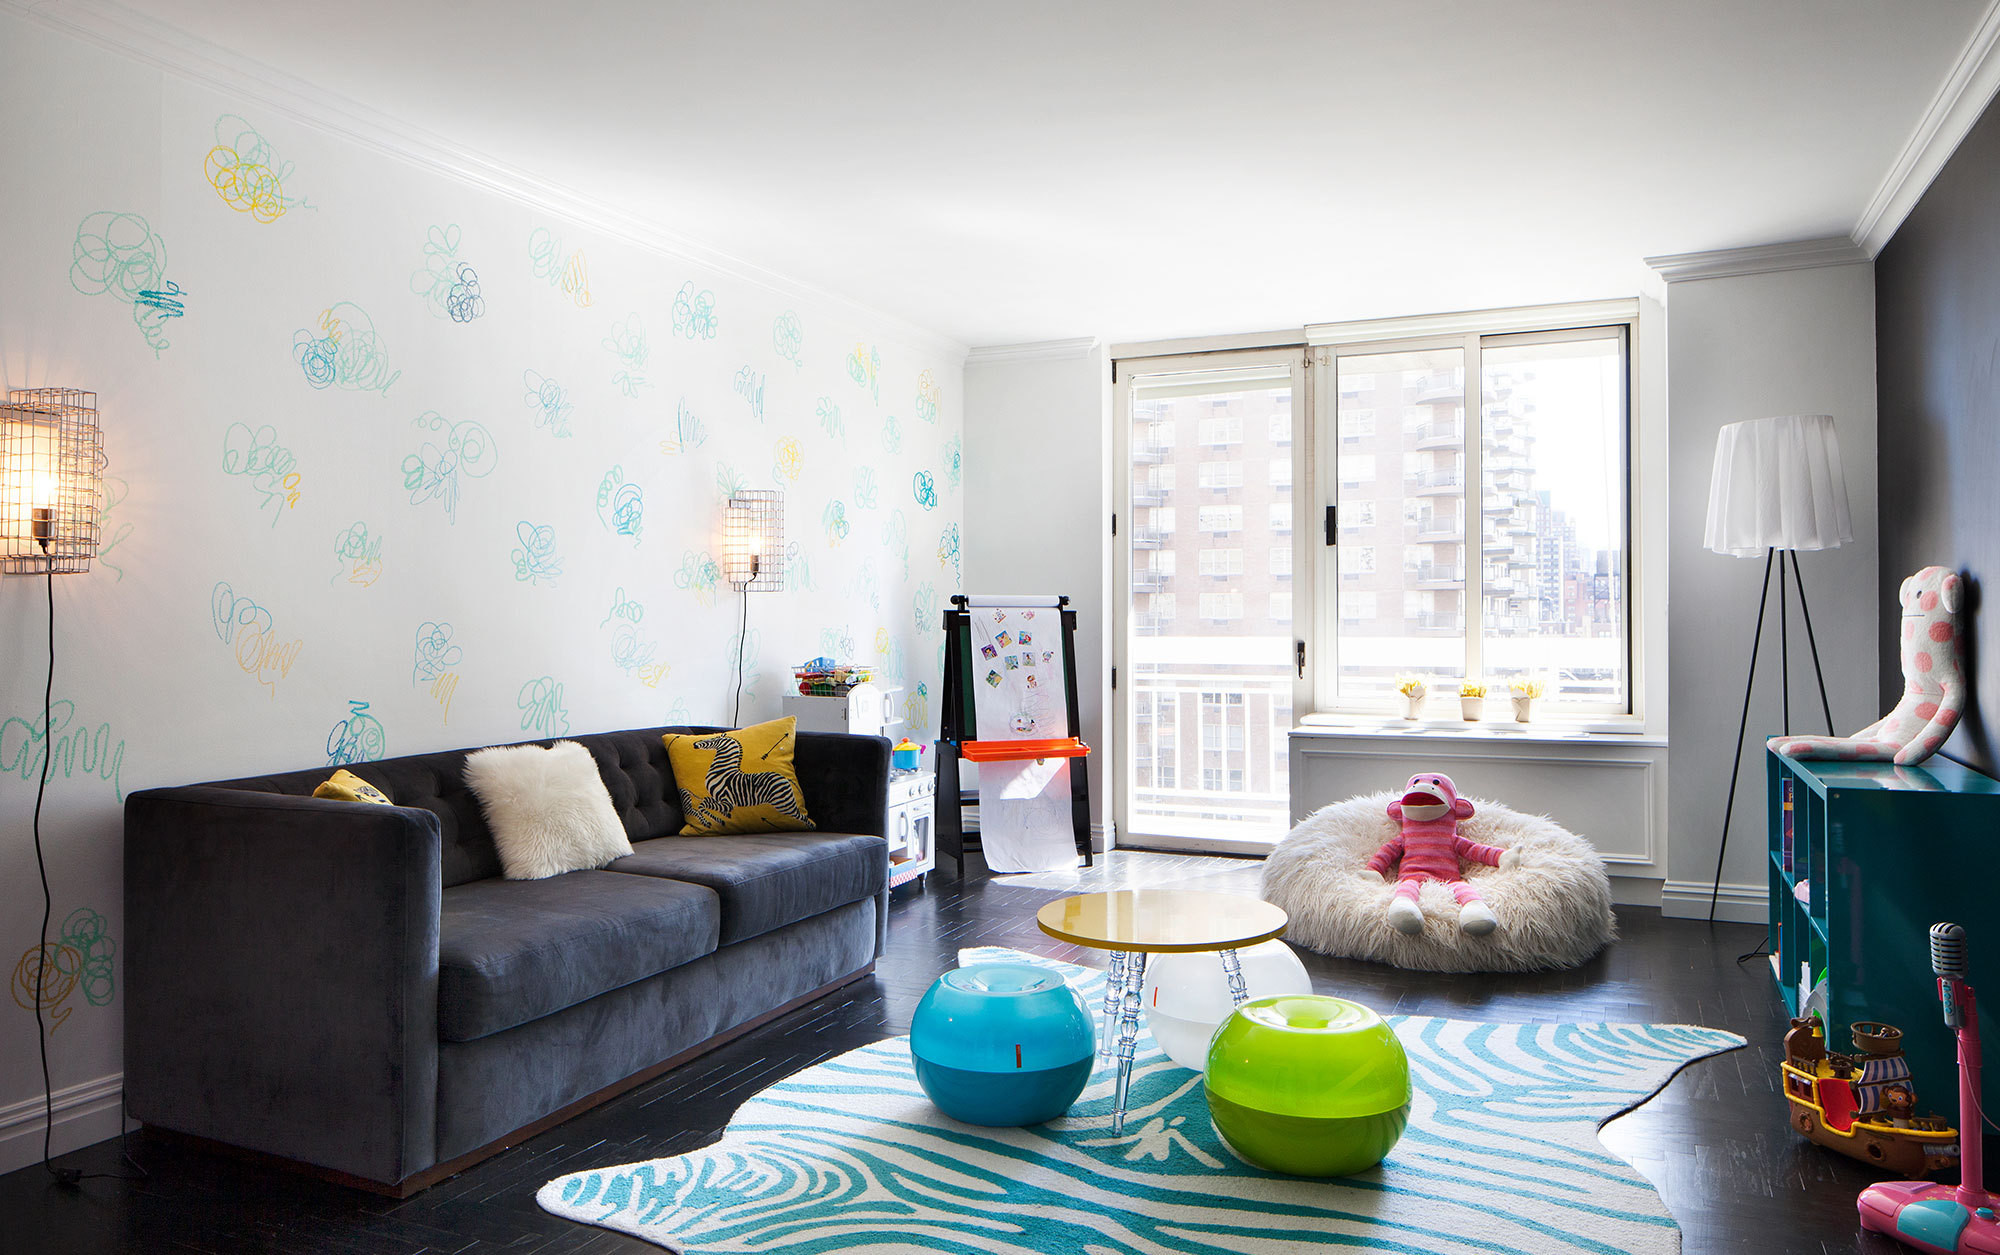 A teal, zebra print rug anchors the dark floors of the play space, which also features cage wall sconces from CB2 and a furry bean bag.